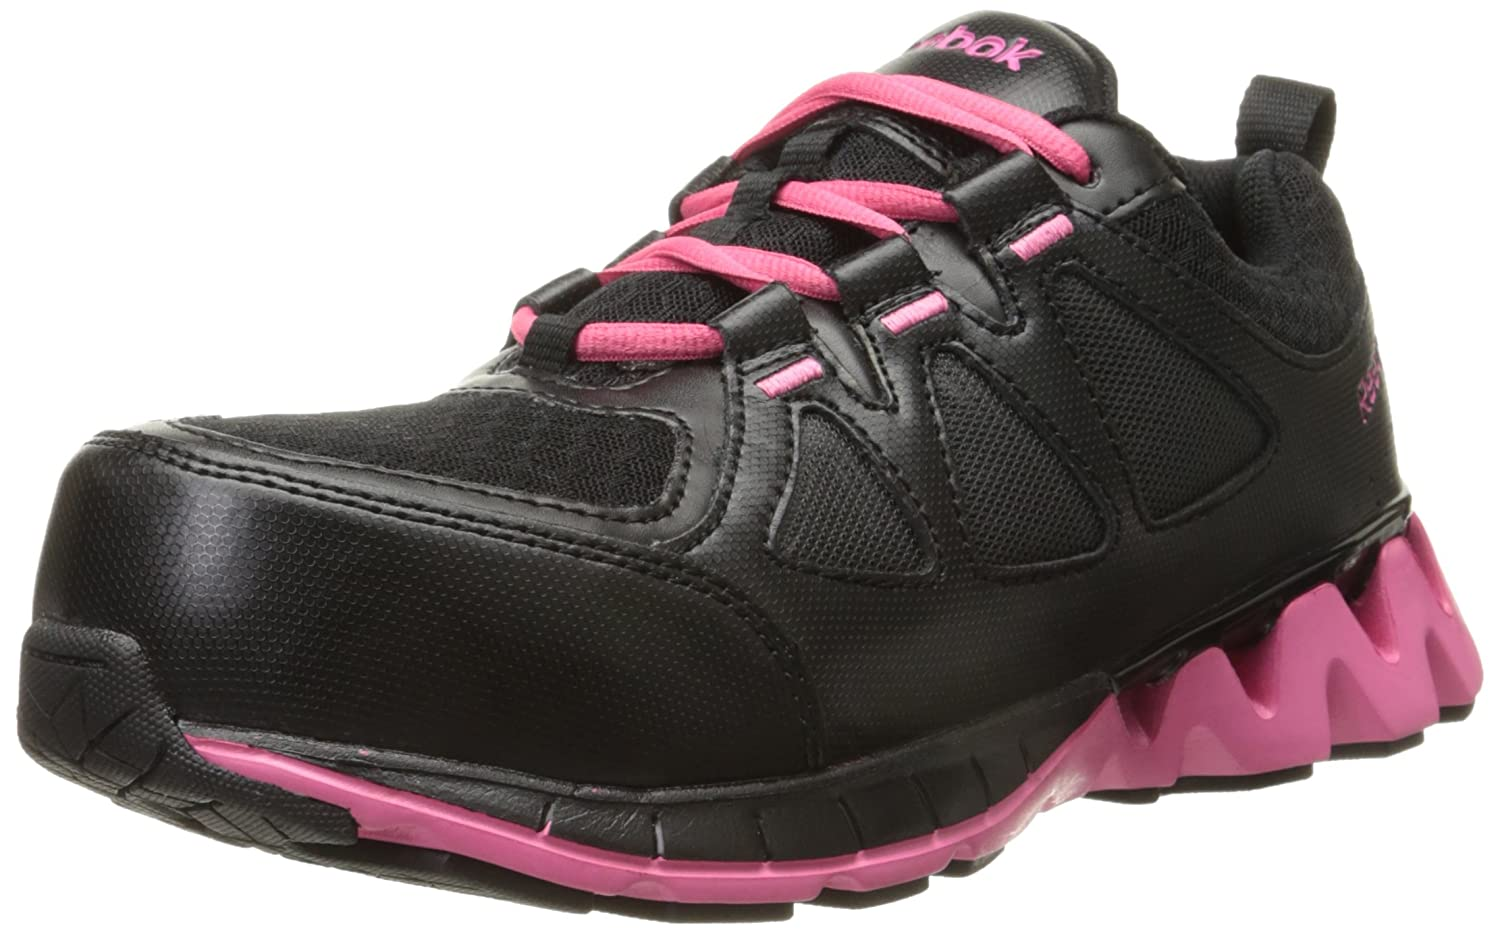 Reebok Work Womens sublite work rb415 Low Top Lace Up Walking Shoes B017NQTZC2 7.5 B(M) US|ブラック ブラック 7.5 B(M) US